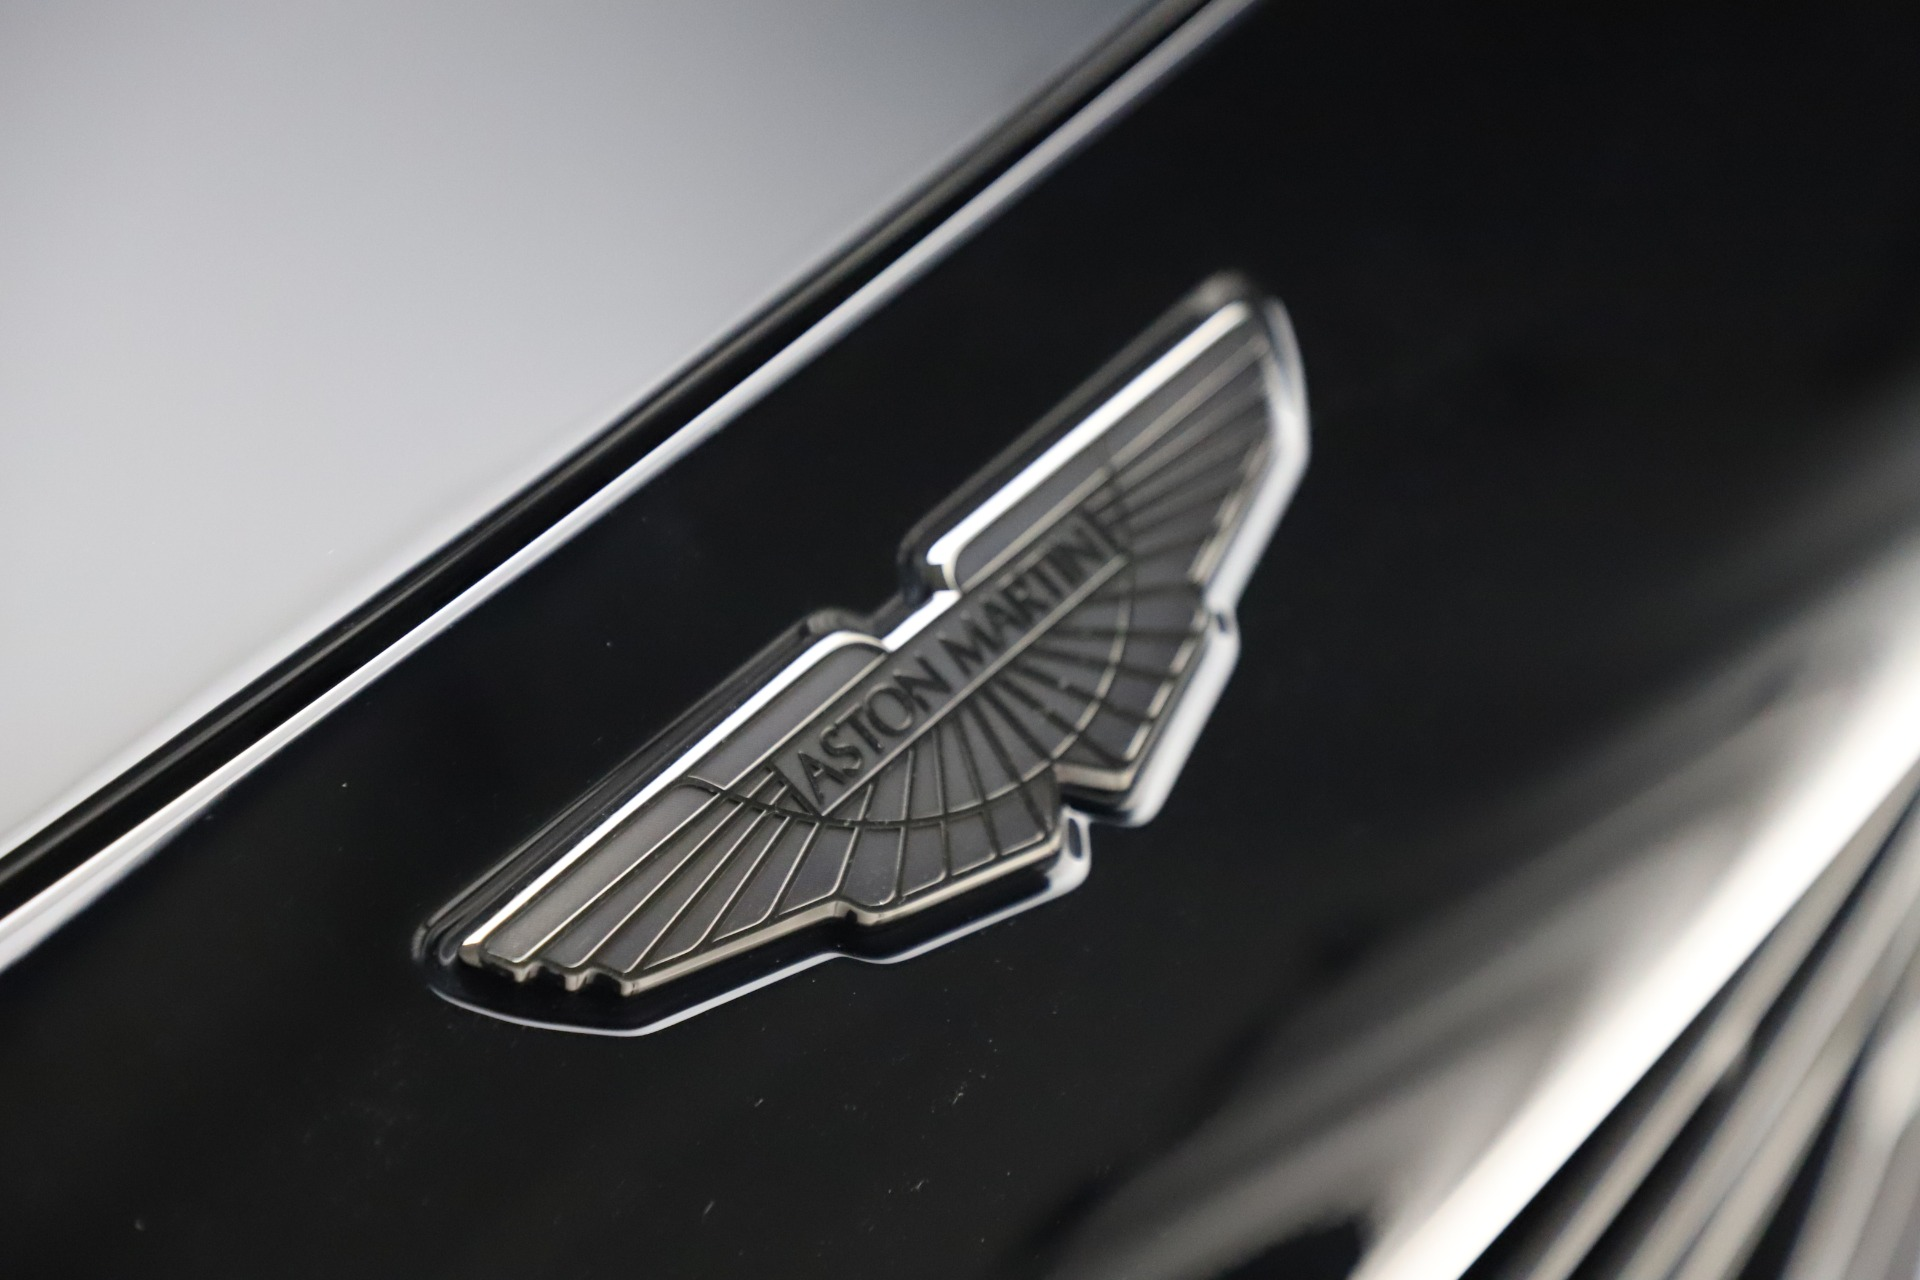 2020 Aston Martin Dbx Suv Stock Order Today 366 Visit Www Karbuds Com For More Info